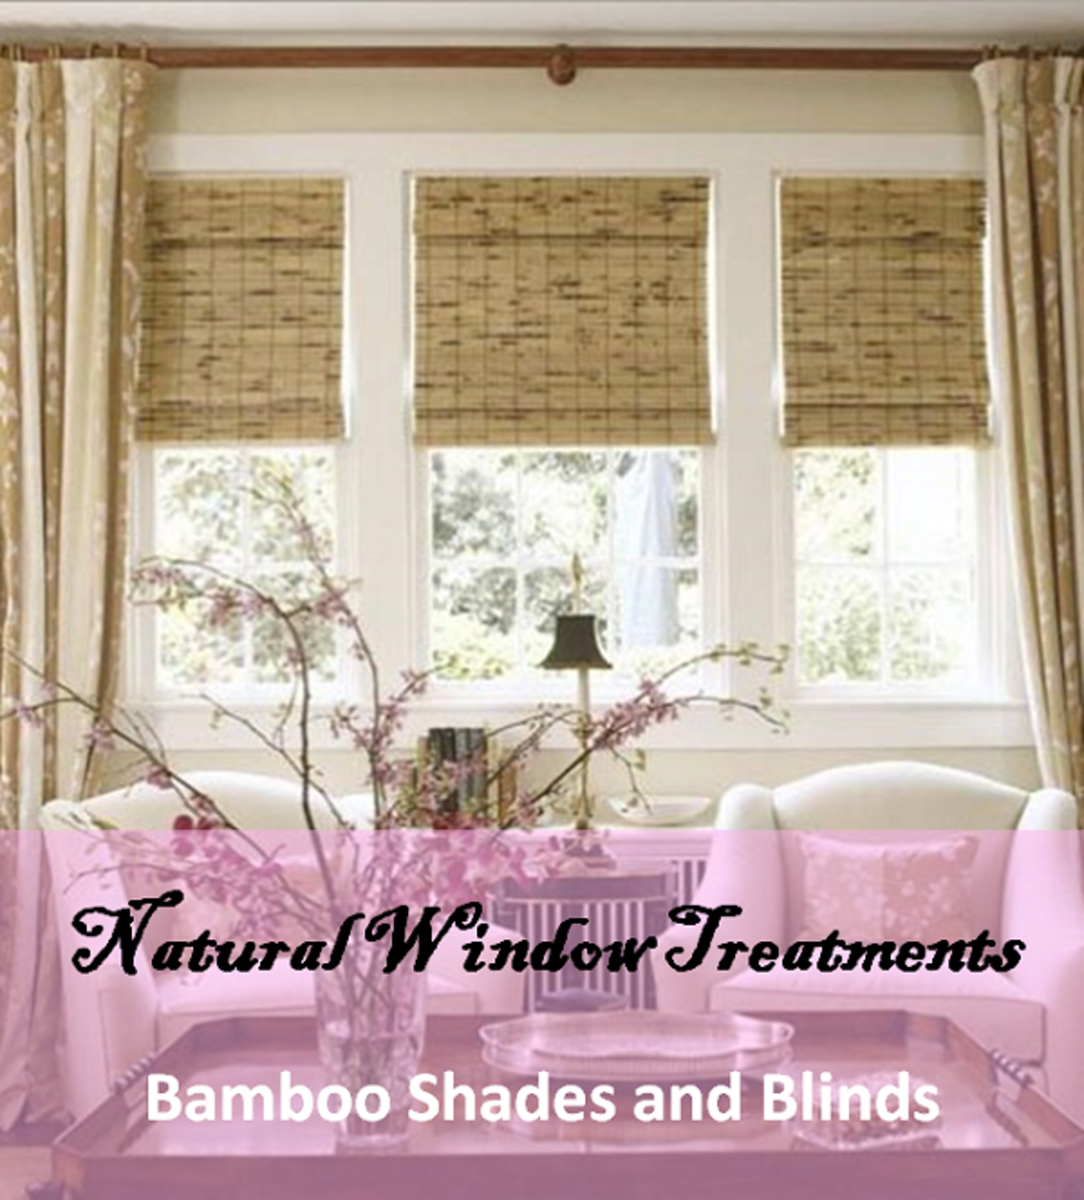 Bamboo roll-up shades come in natural warm colours, like the ones in this picture, but they can also come bleached, stained, or dyed to other colours like blue, red, brown, and black.